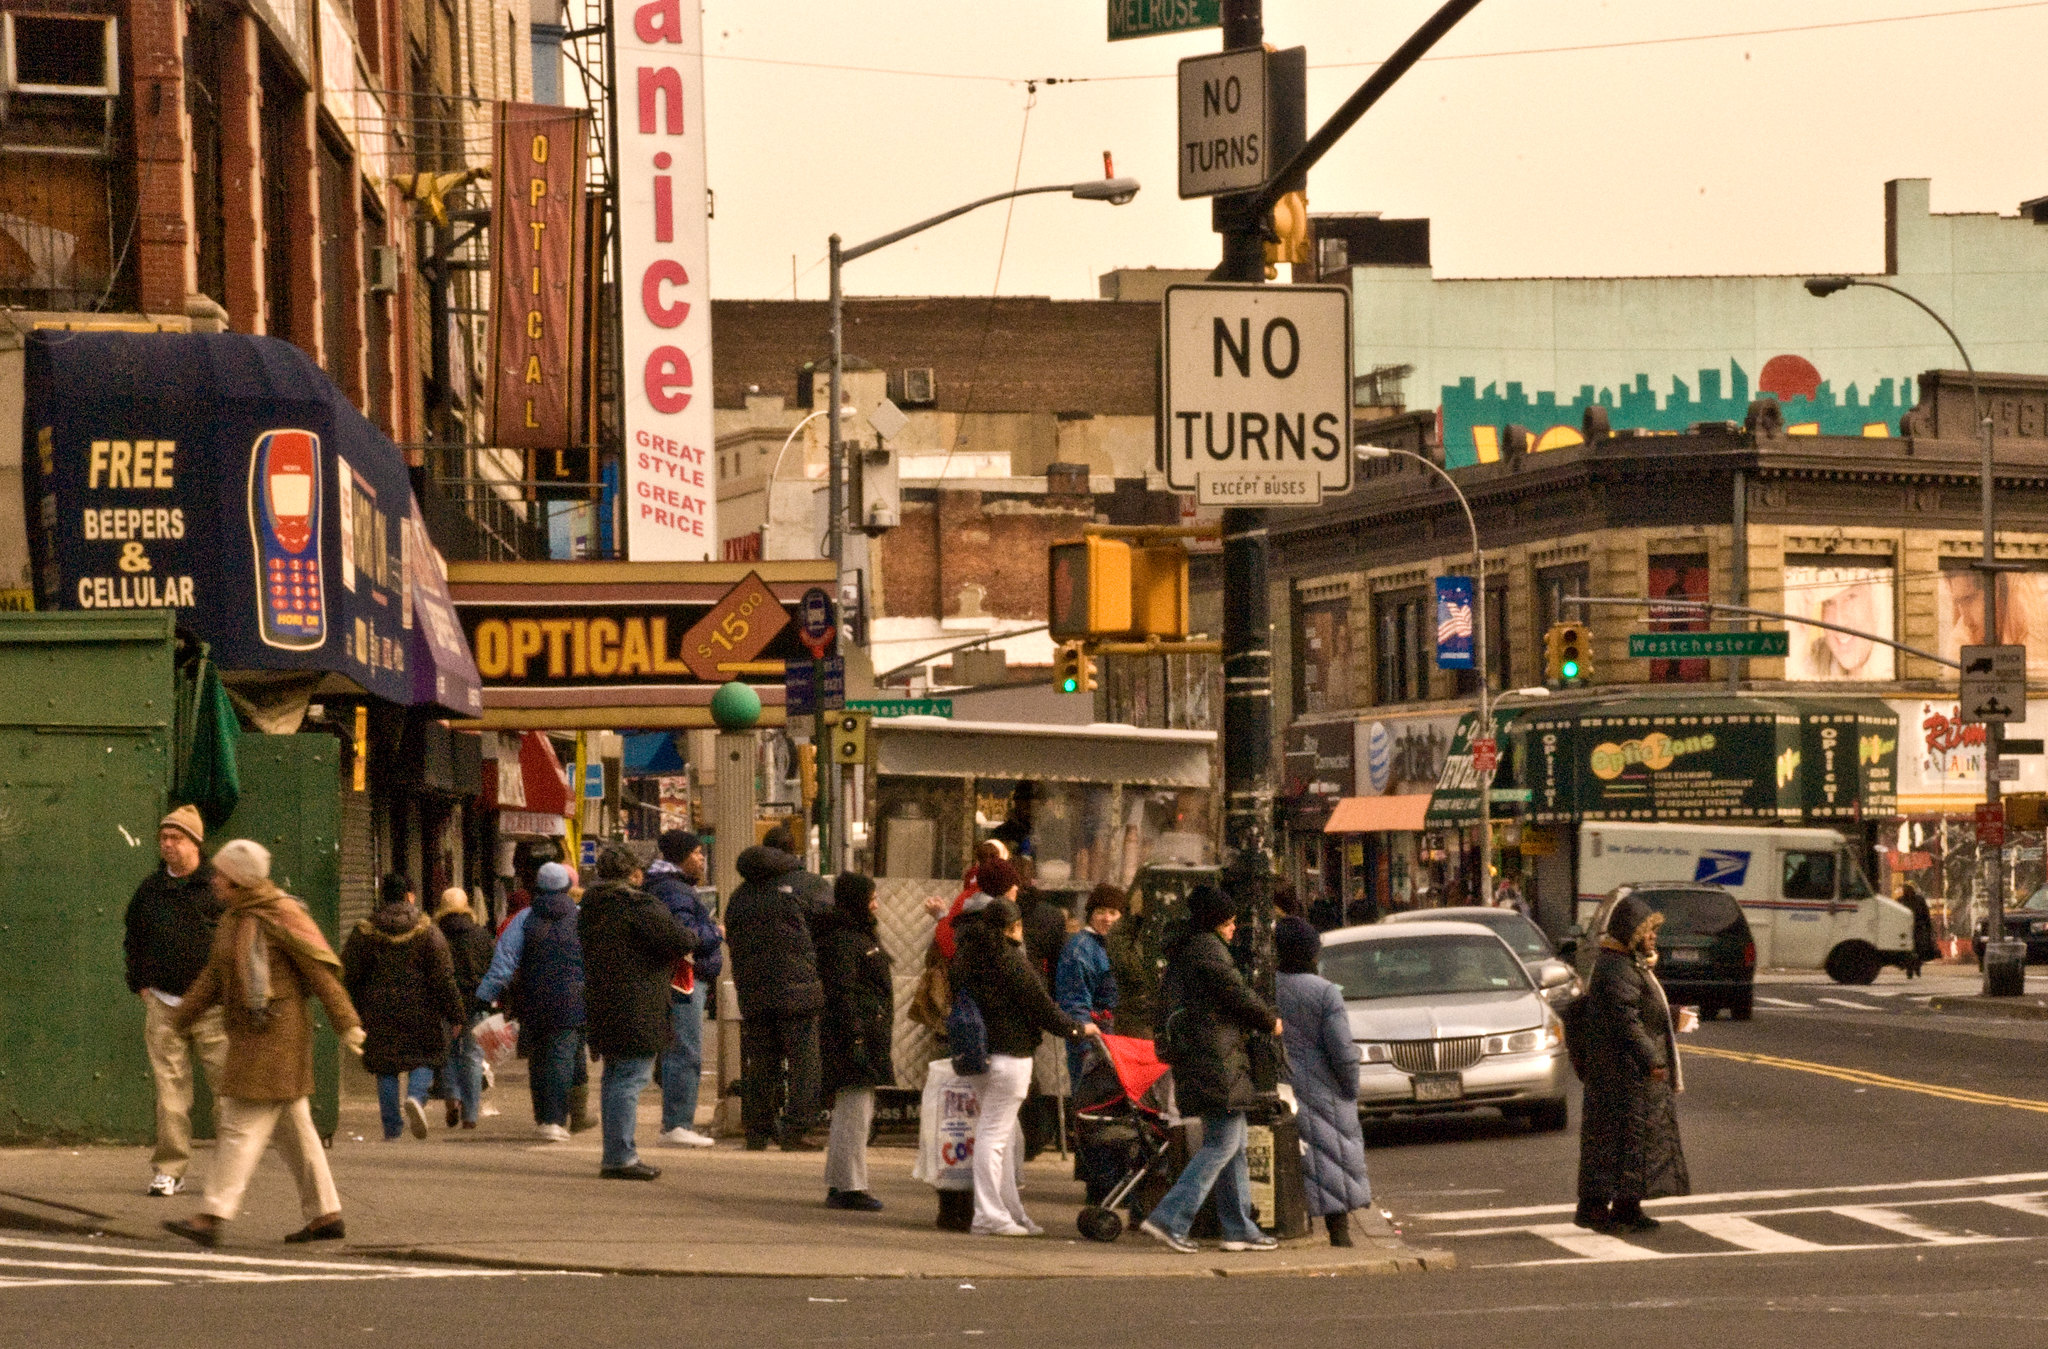 3rd. Avenue and 149th. Street, The Bronx, New York - photo by Phillip Capper under CC BY 2.0